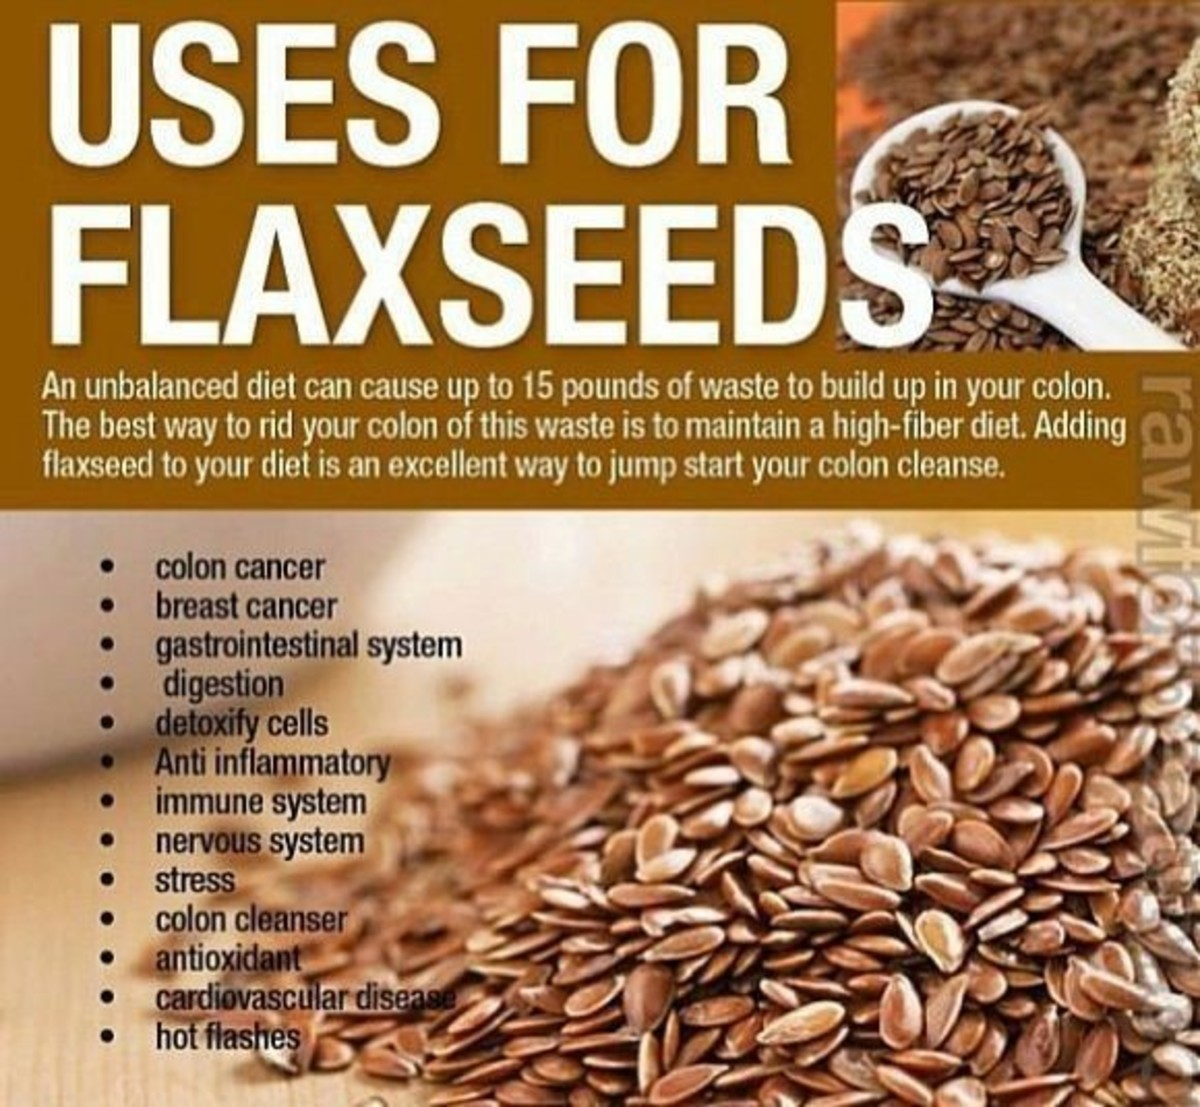 Flax seeds' wide array of nutrients means they're good for improving your health in many areas!